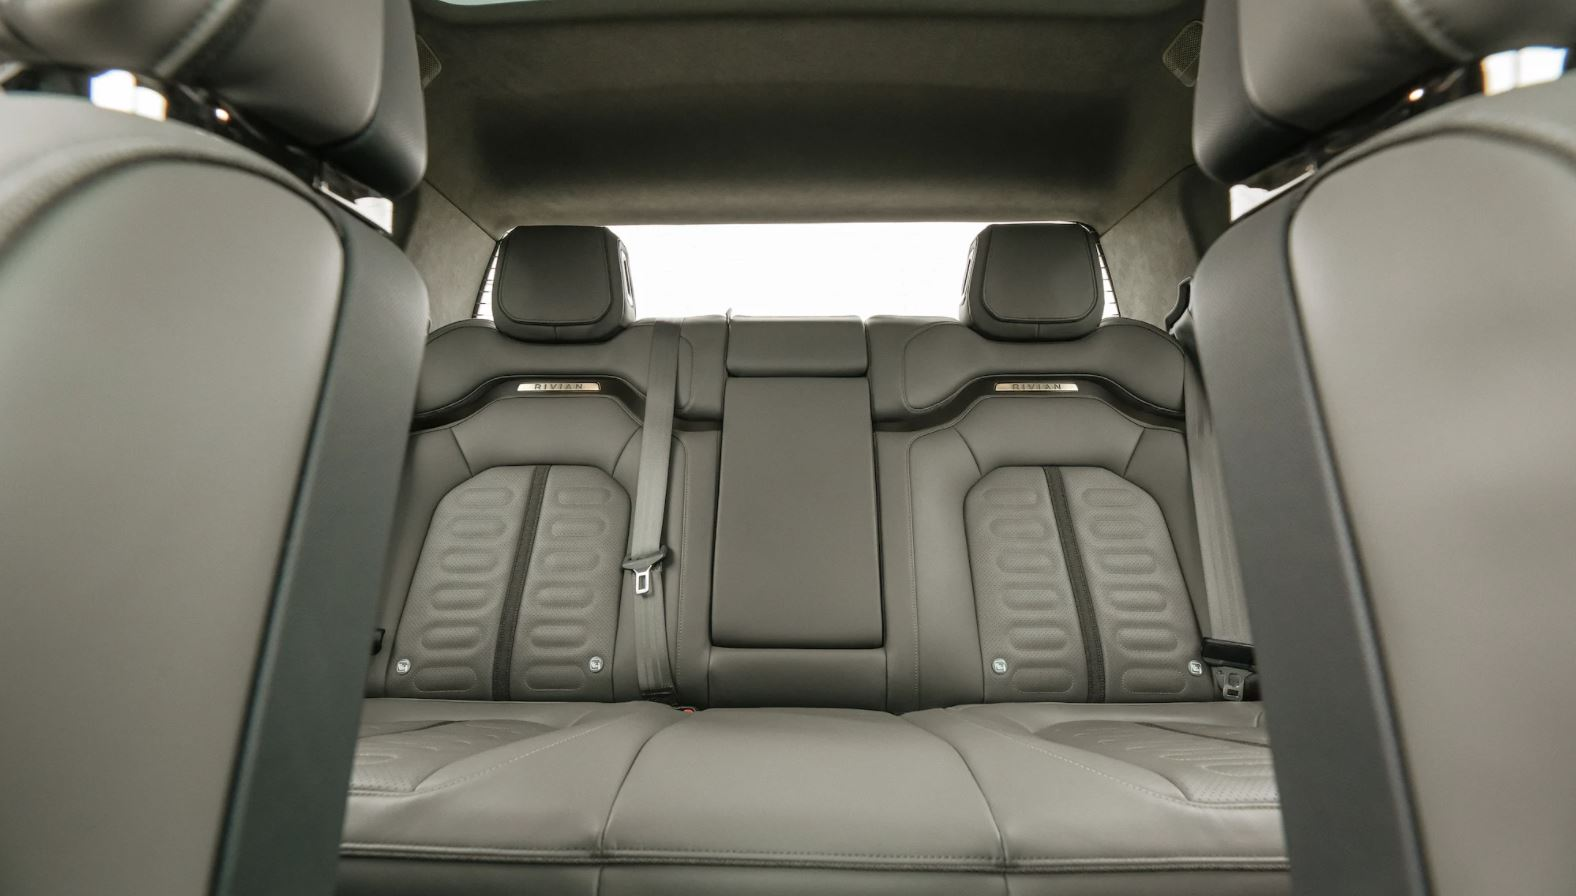 R1T's seats can be easily cleaned